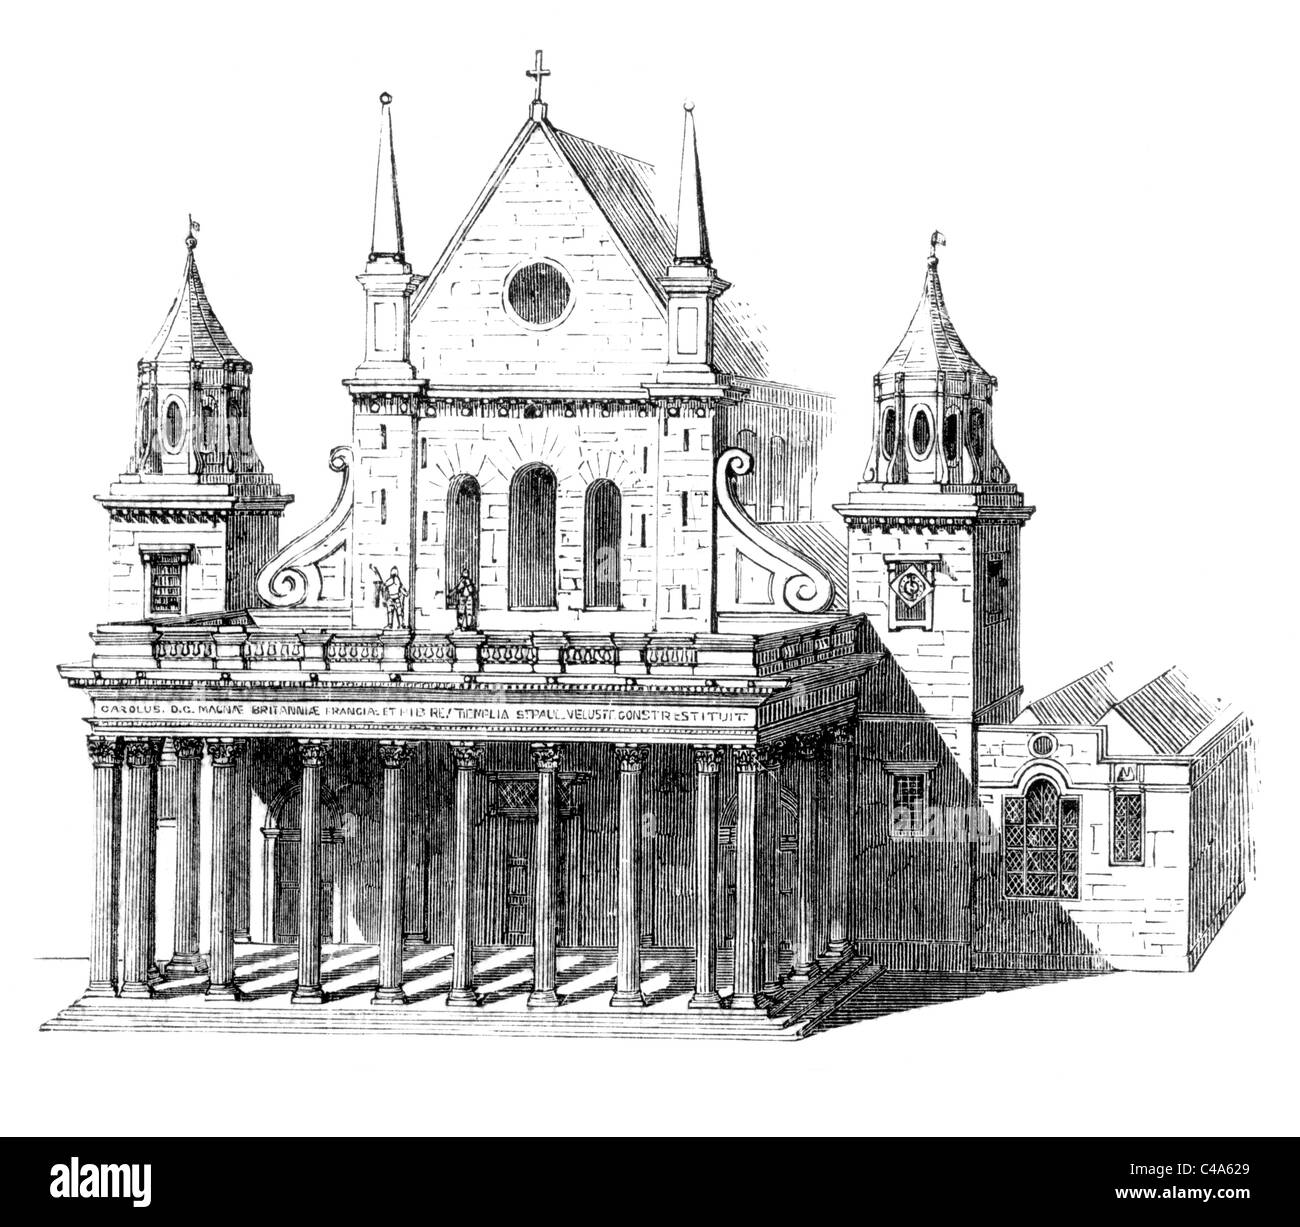 old st pauls cathedral stock photos old st pauls cathedral stock inigo jones portico west end of old st paul s cathedral london black